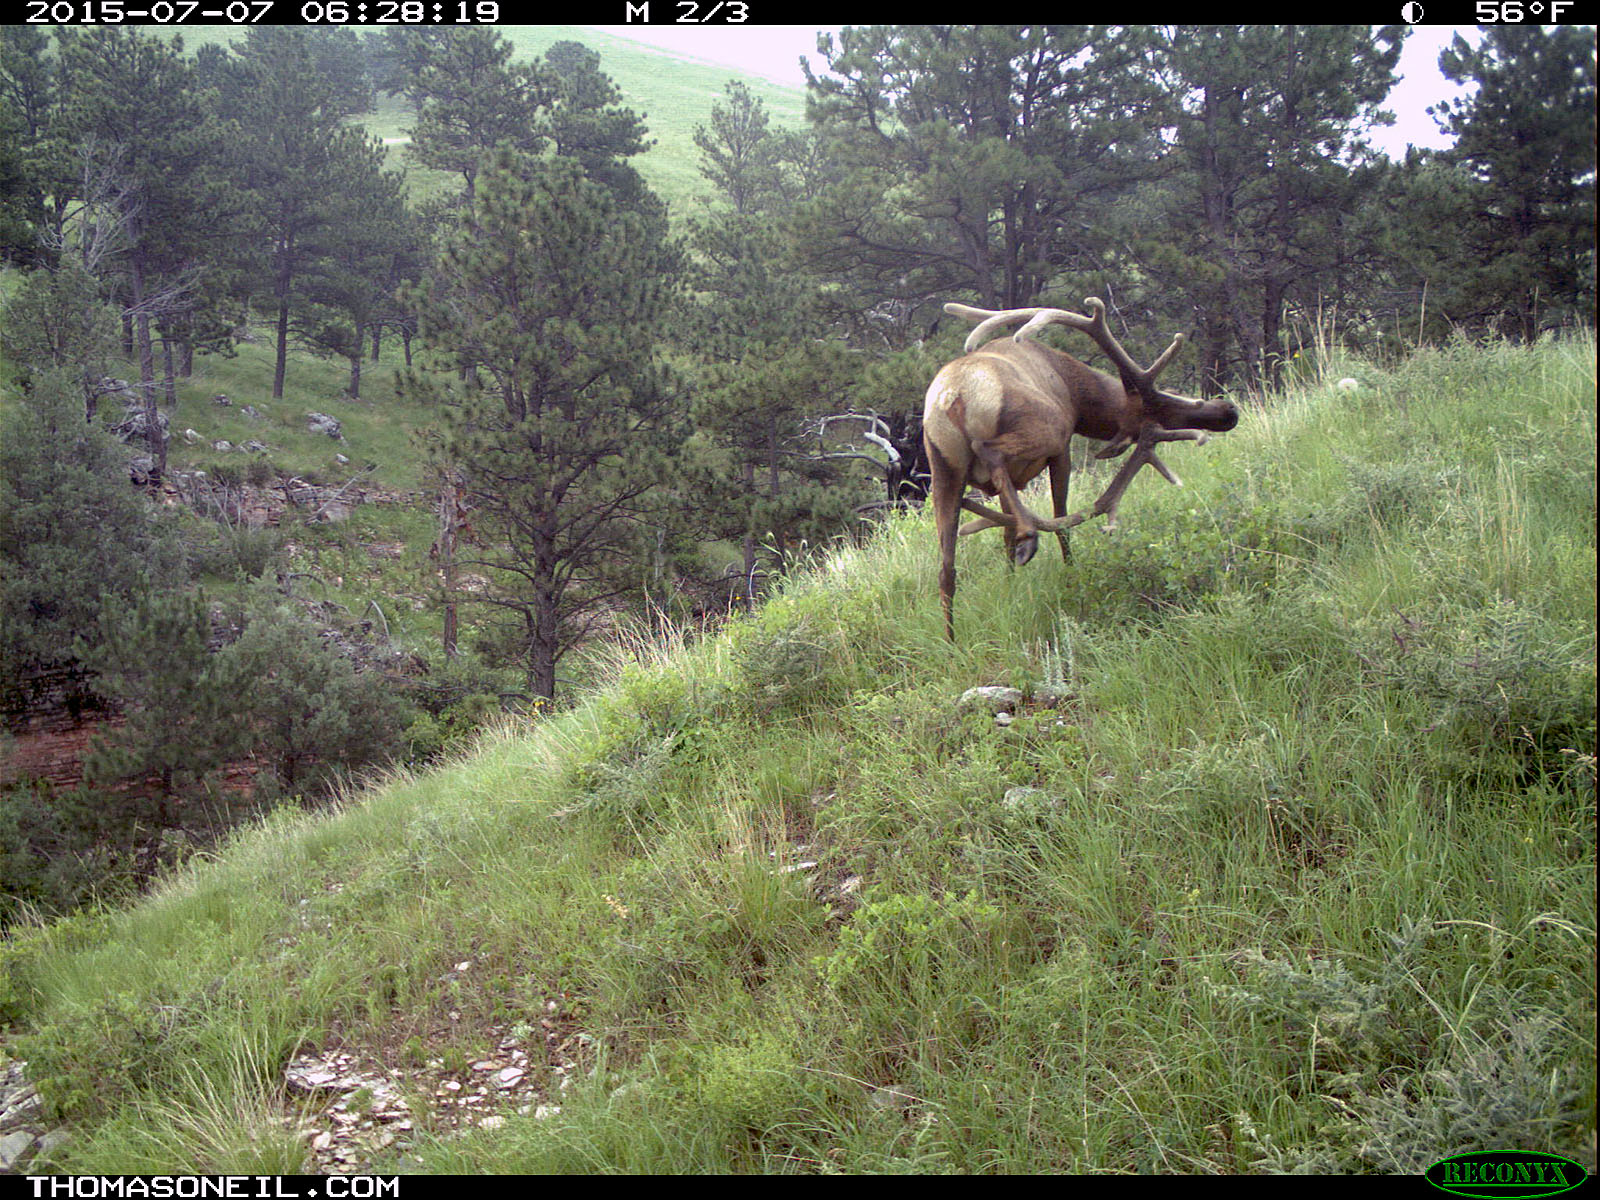 Elk scratching sequence on trailcam, 6 of 7, Wind Cave National Park, July 2015,